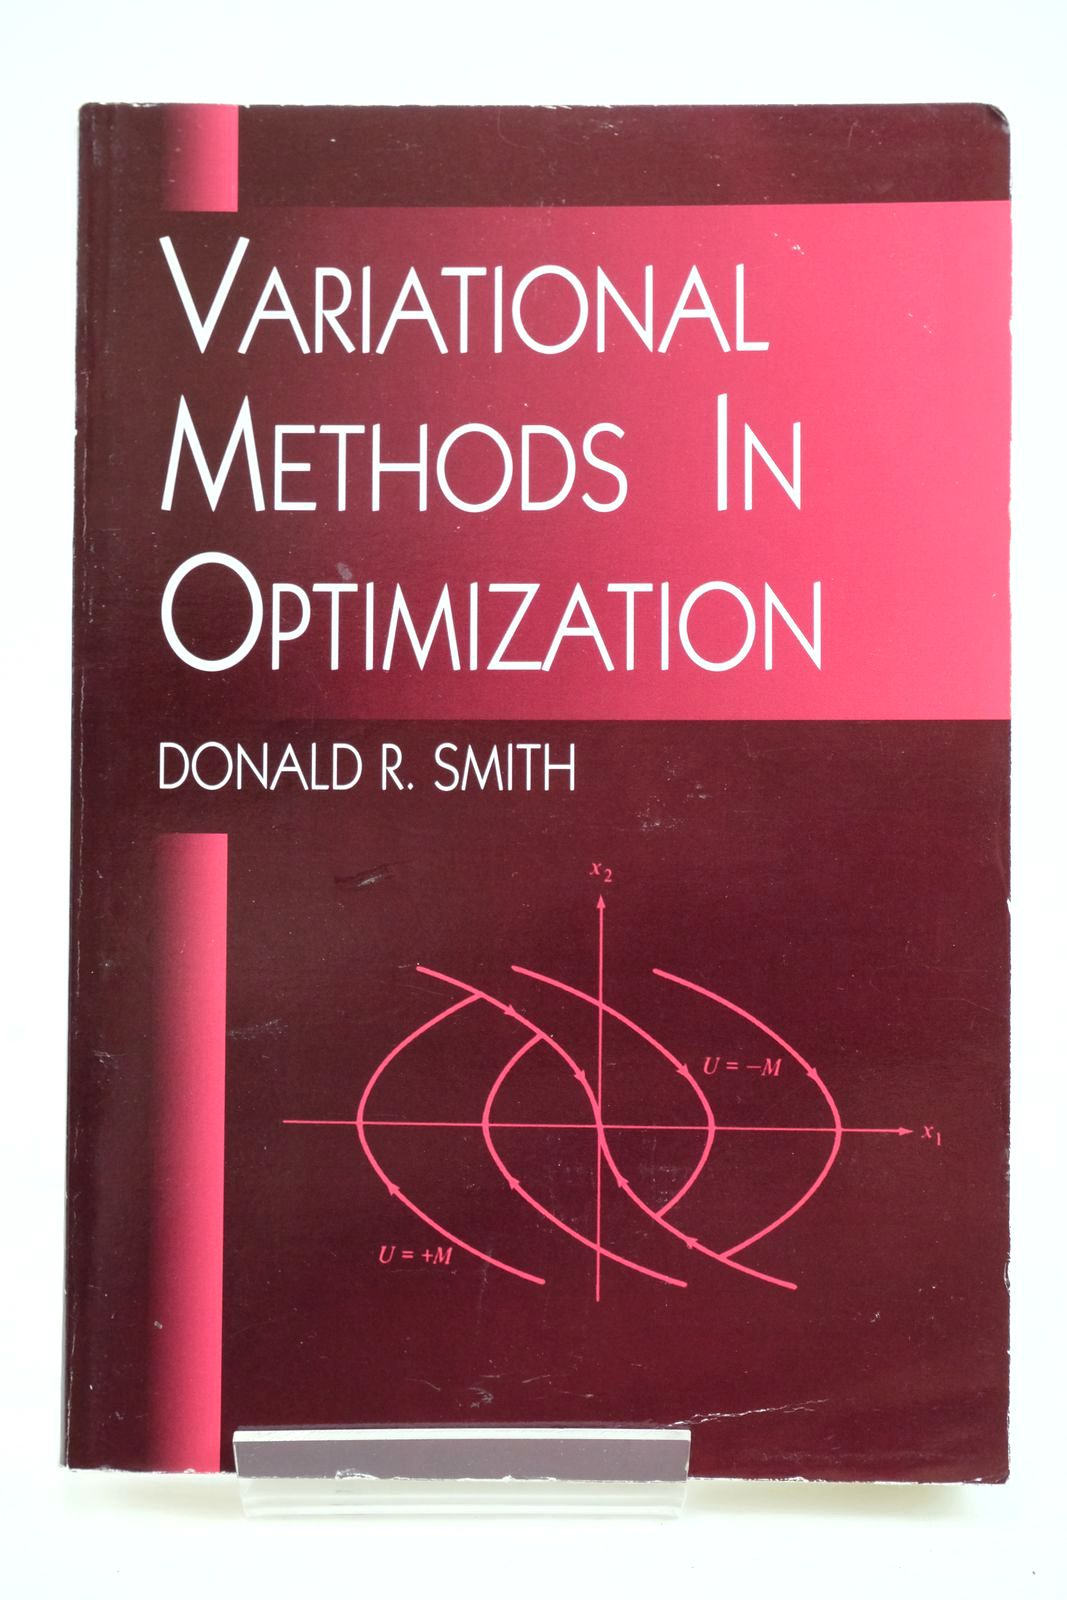 Photo of VARIATIONAL METHODS IN OPTIMIZATION written by Smith, Donald R. published by Dover Publications Inc. (STOCK CODE: 1319606)  for sale by Stella & Rose's Books